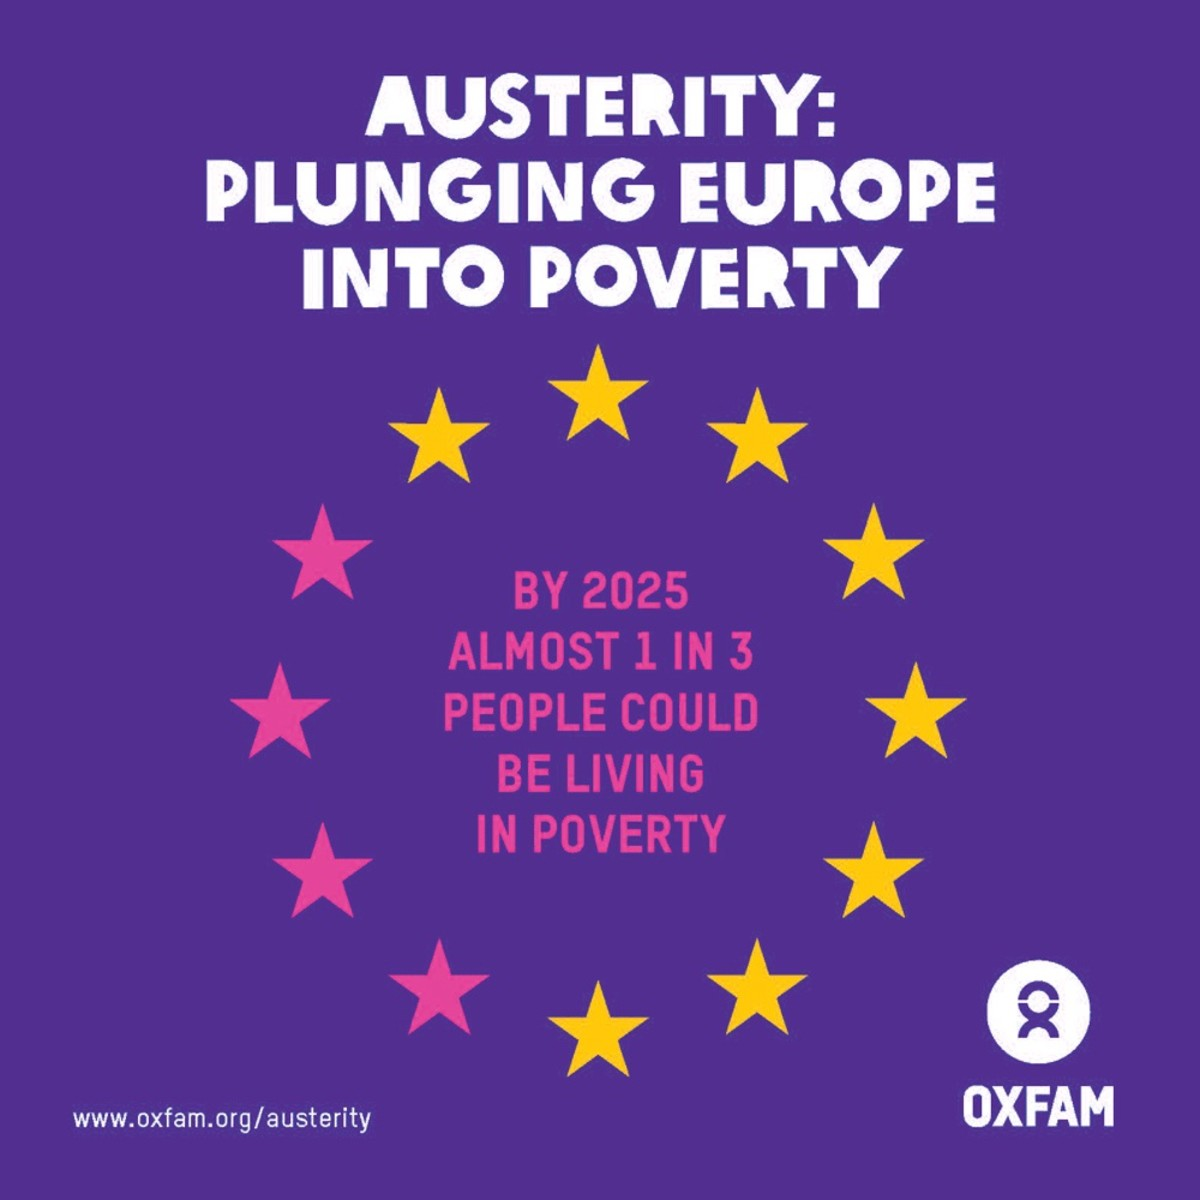 The harm Austerity is doing to European people.